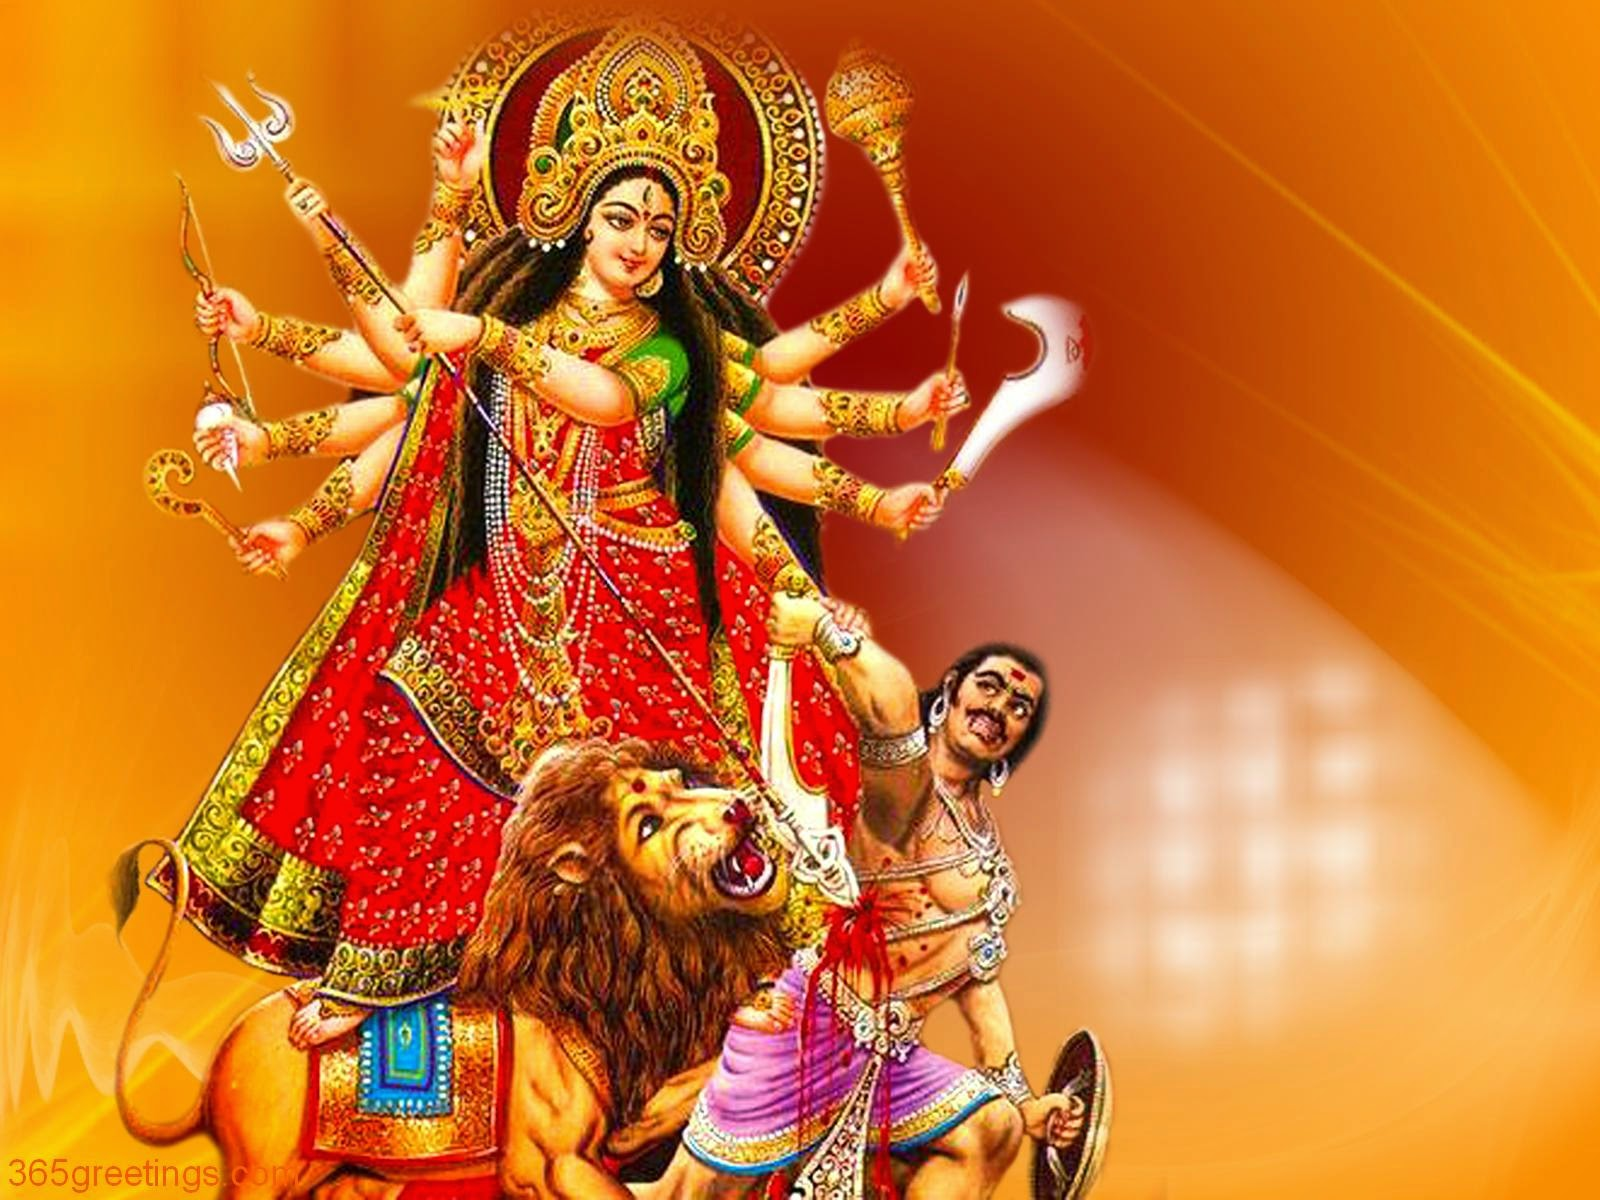 Best Maa Durga hd wallpaper for free download